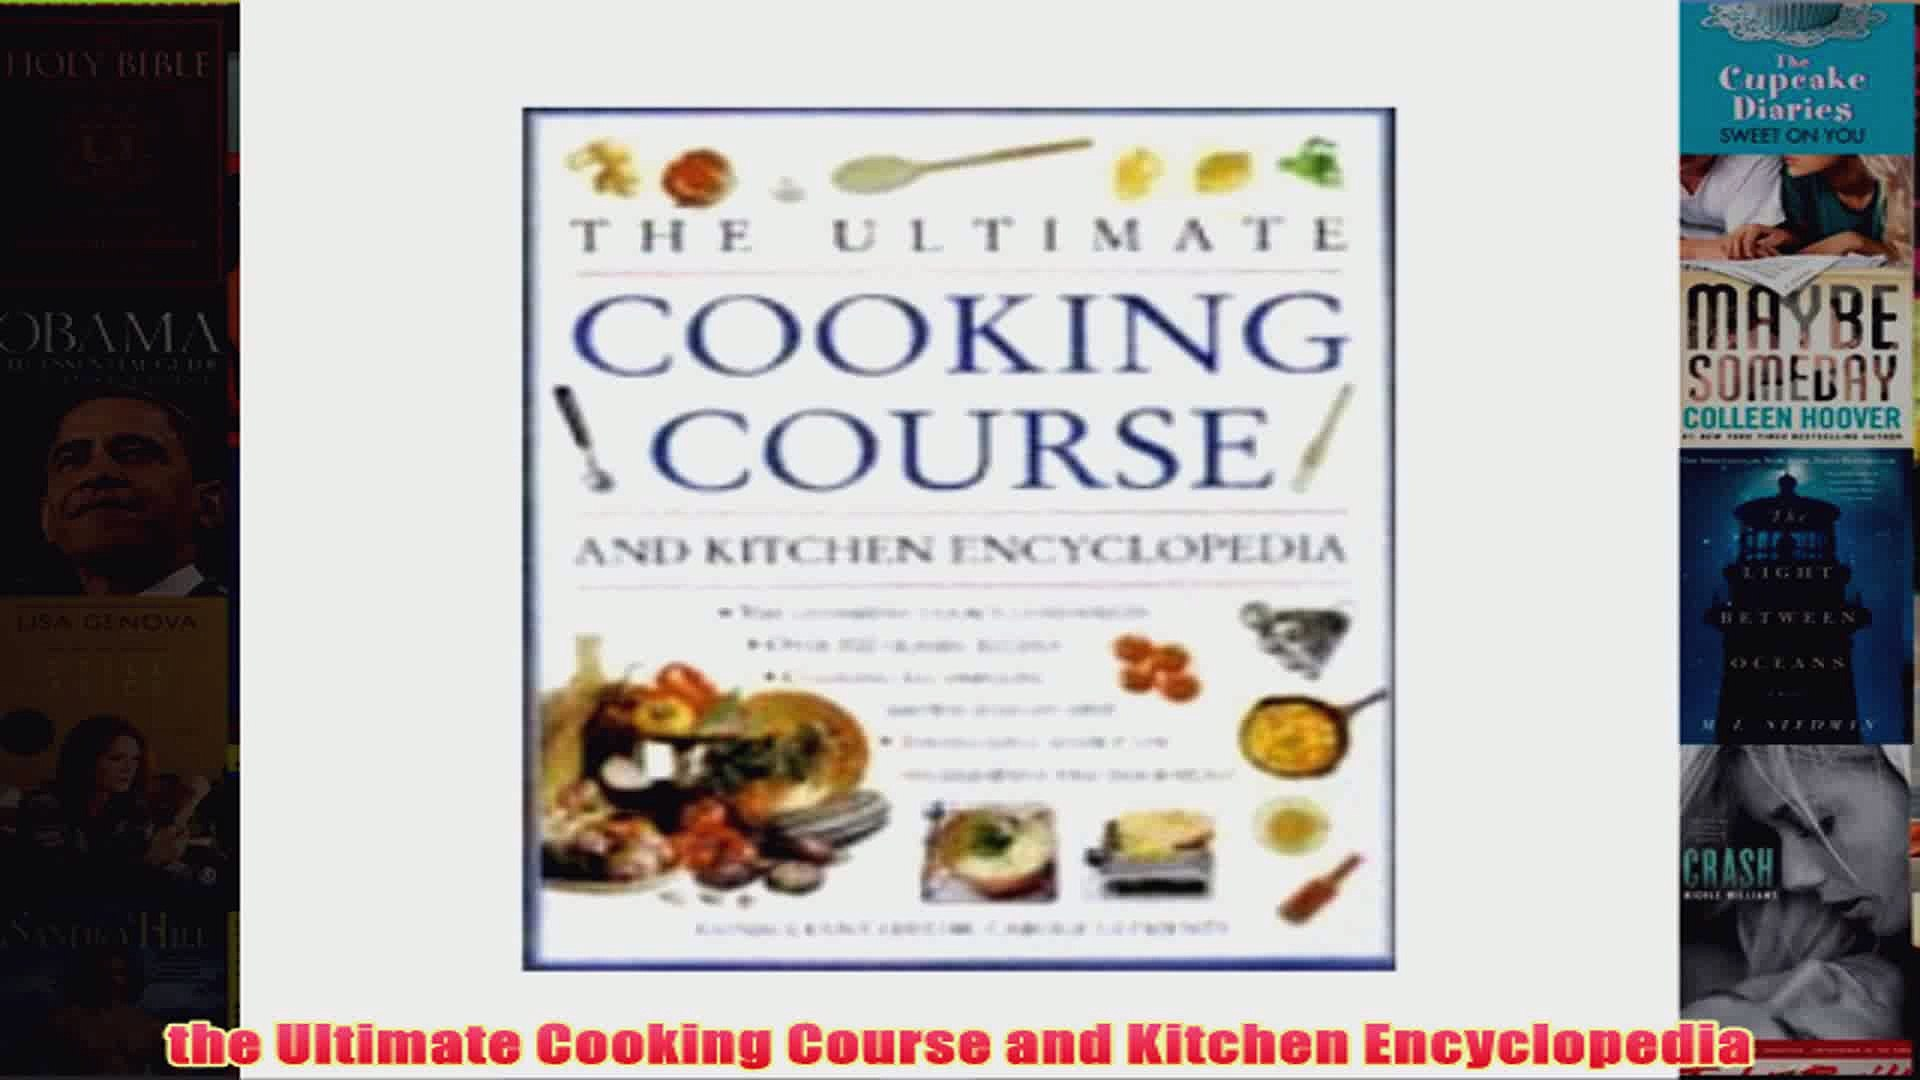 Gordon ramsay ultimate cookery course recipes pdf free download